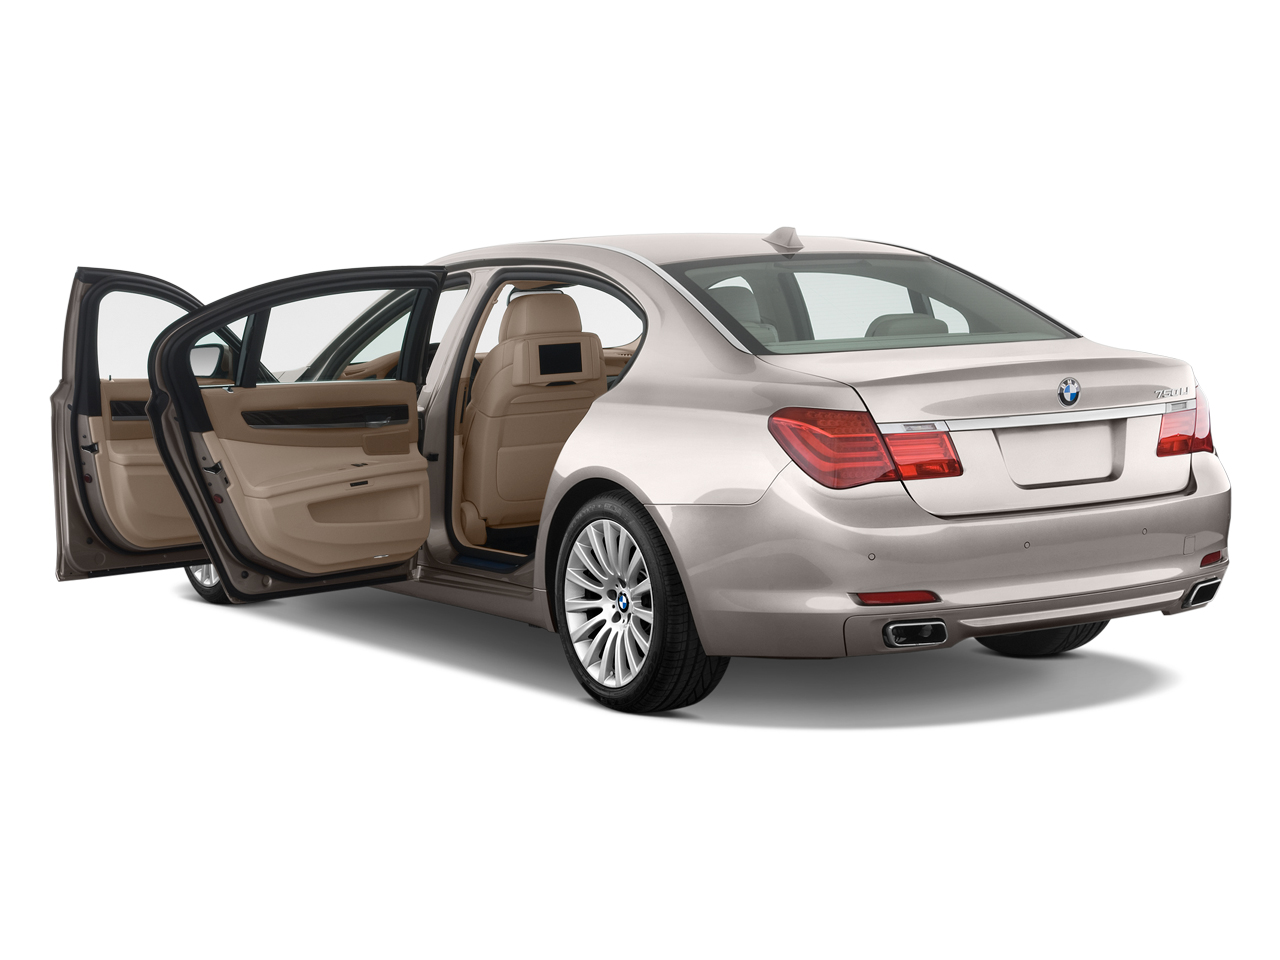 2009 Bmw 750i First Drive Review Automobile Magazine